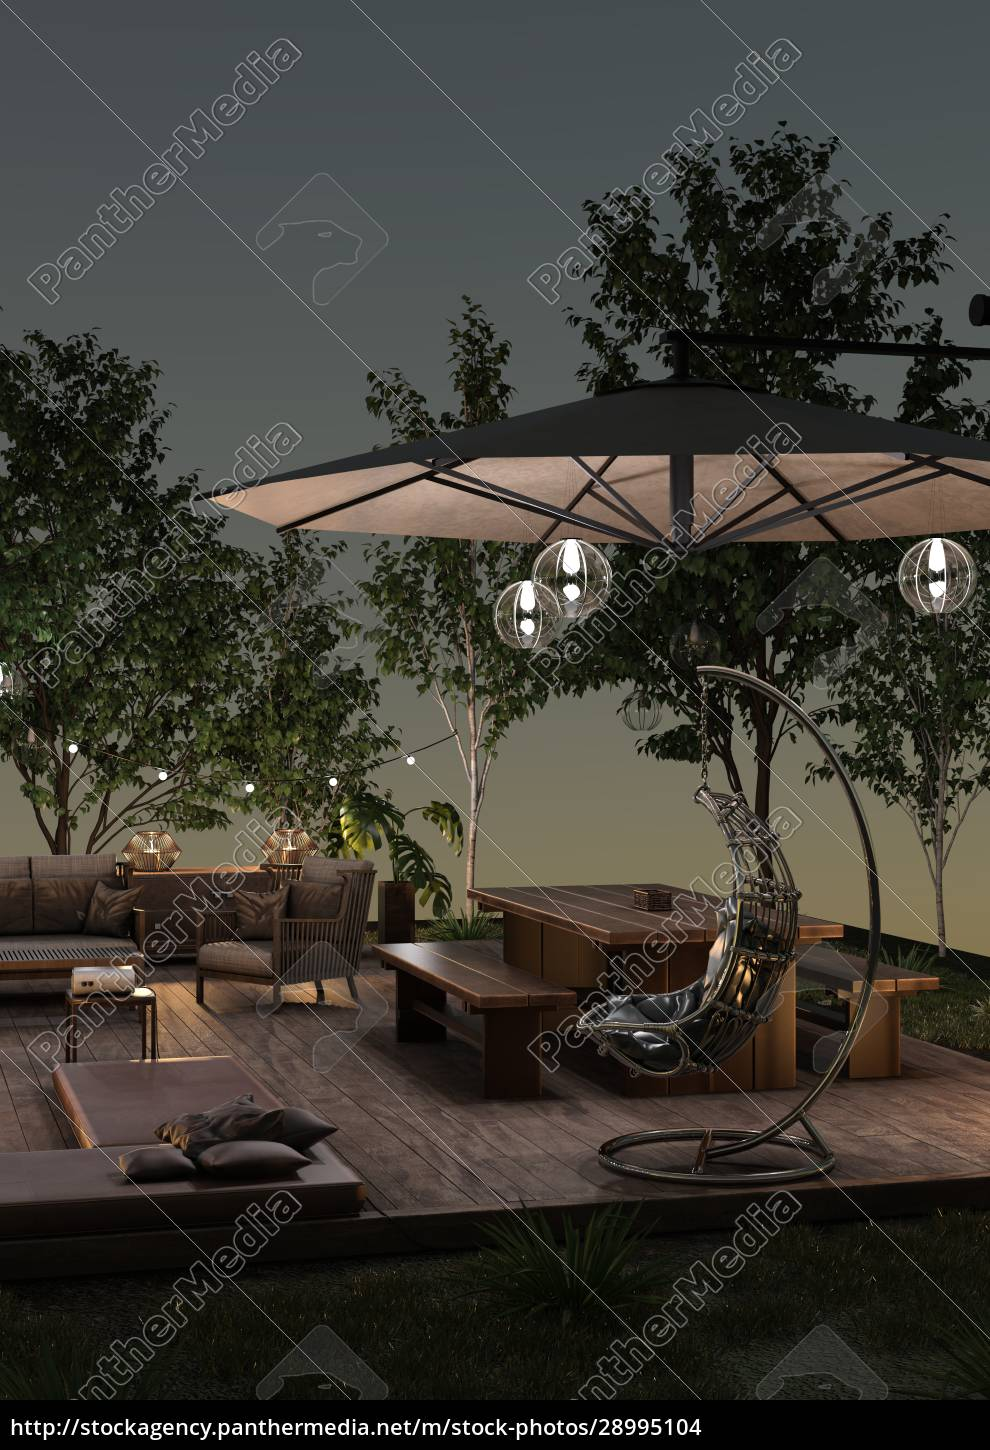 3d, rendering, home, theater, outside - 28995104